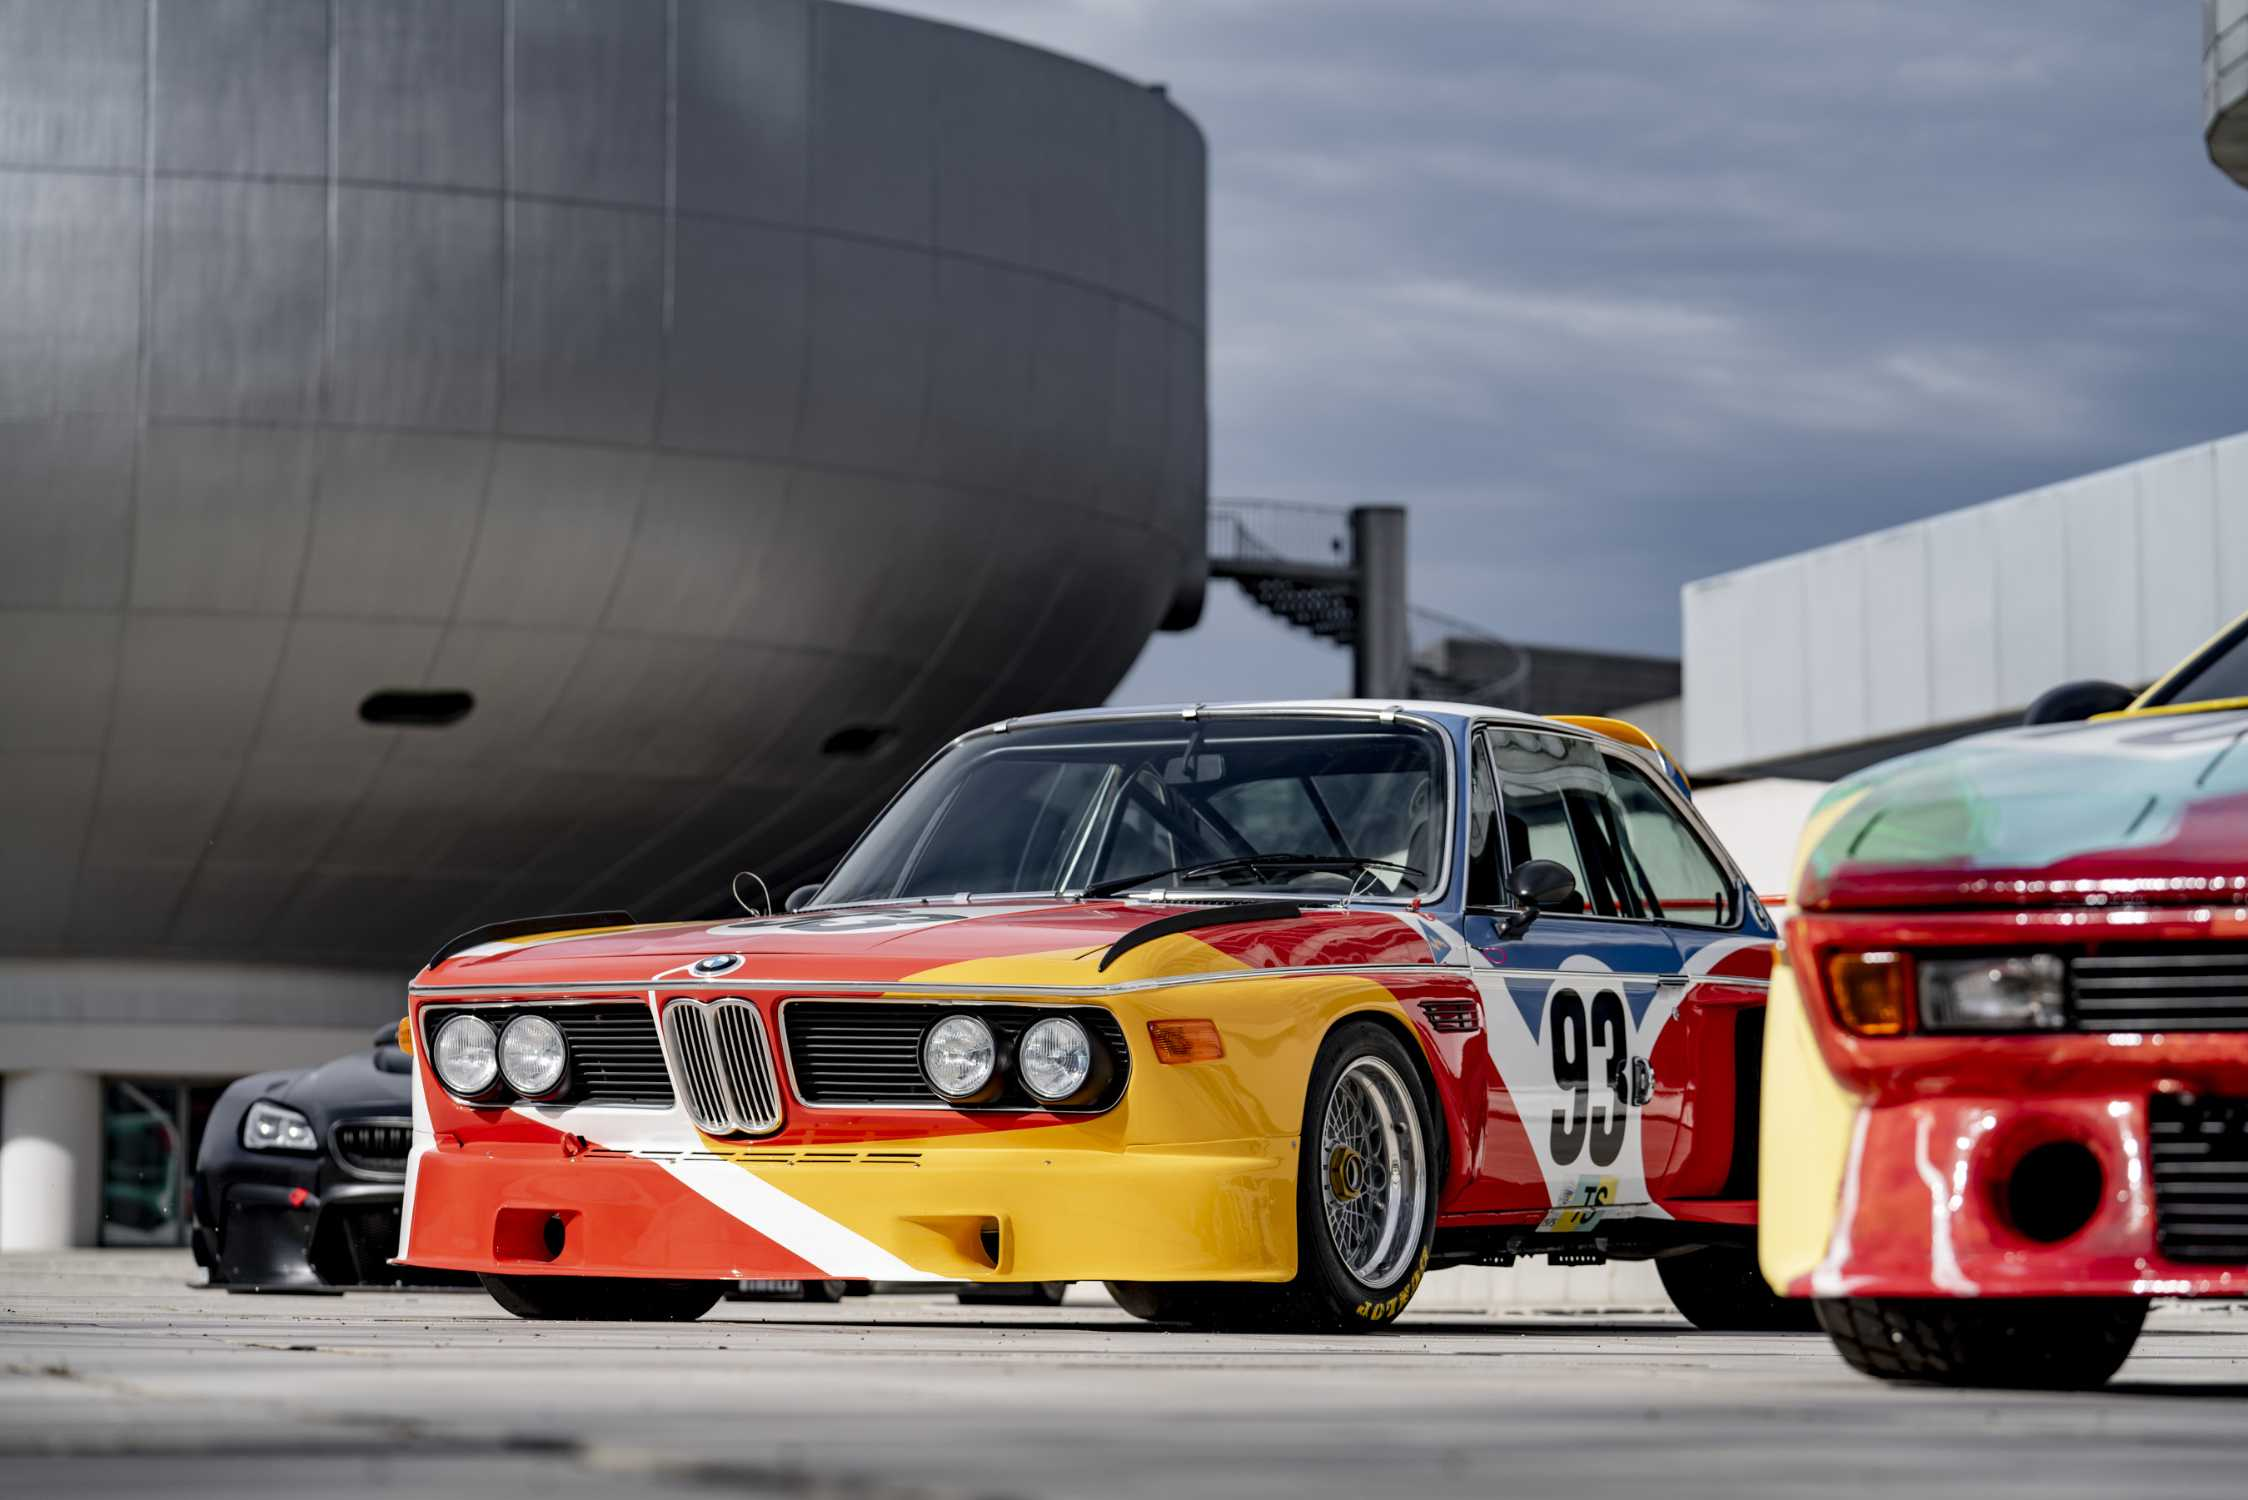 Alexander Calder, BMW Art Car, 1975 - BMW 3.0 CSL, in front of the BMW Group Headquarters and BMW Museum in Munich. (03/2019)